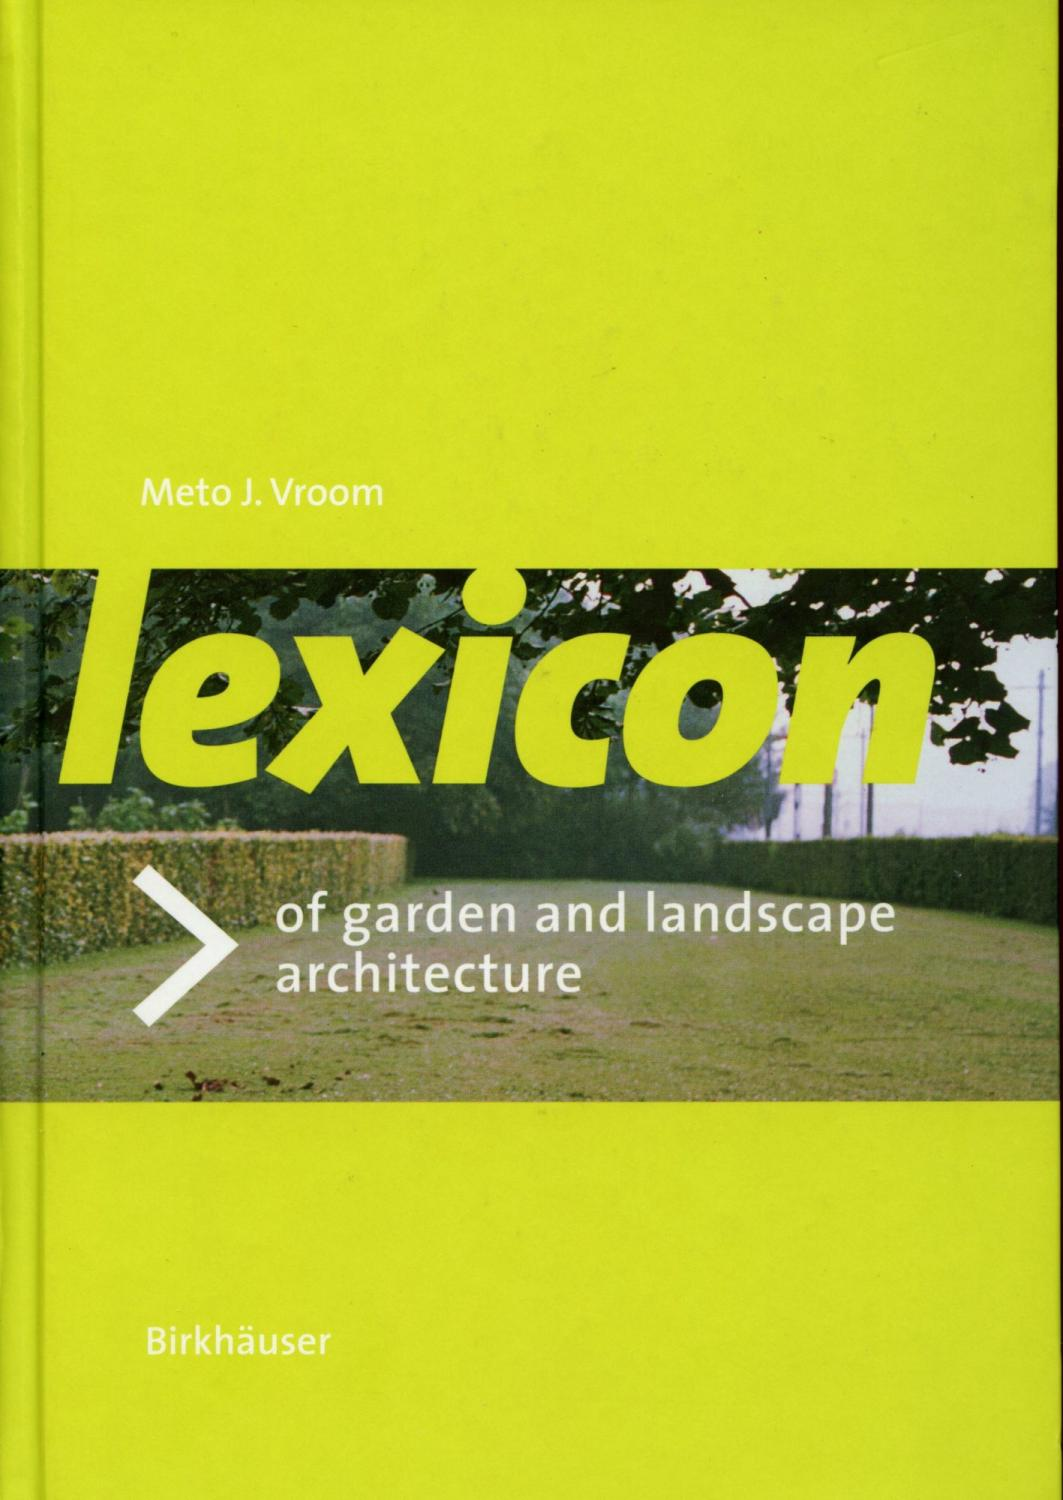 One of Vroom's important publications: his Lexicon of Landscape Architecture.